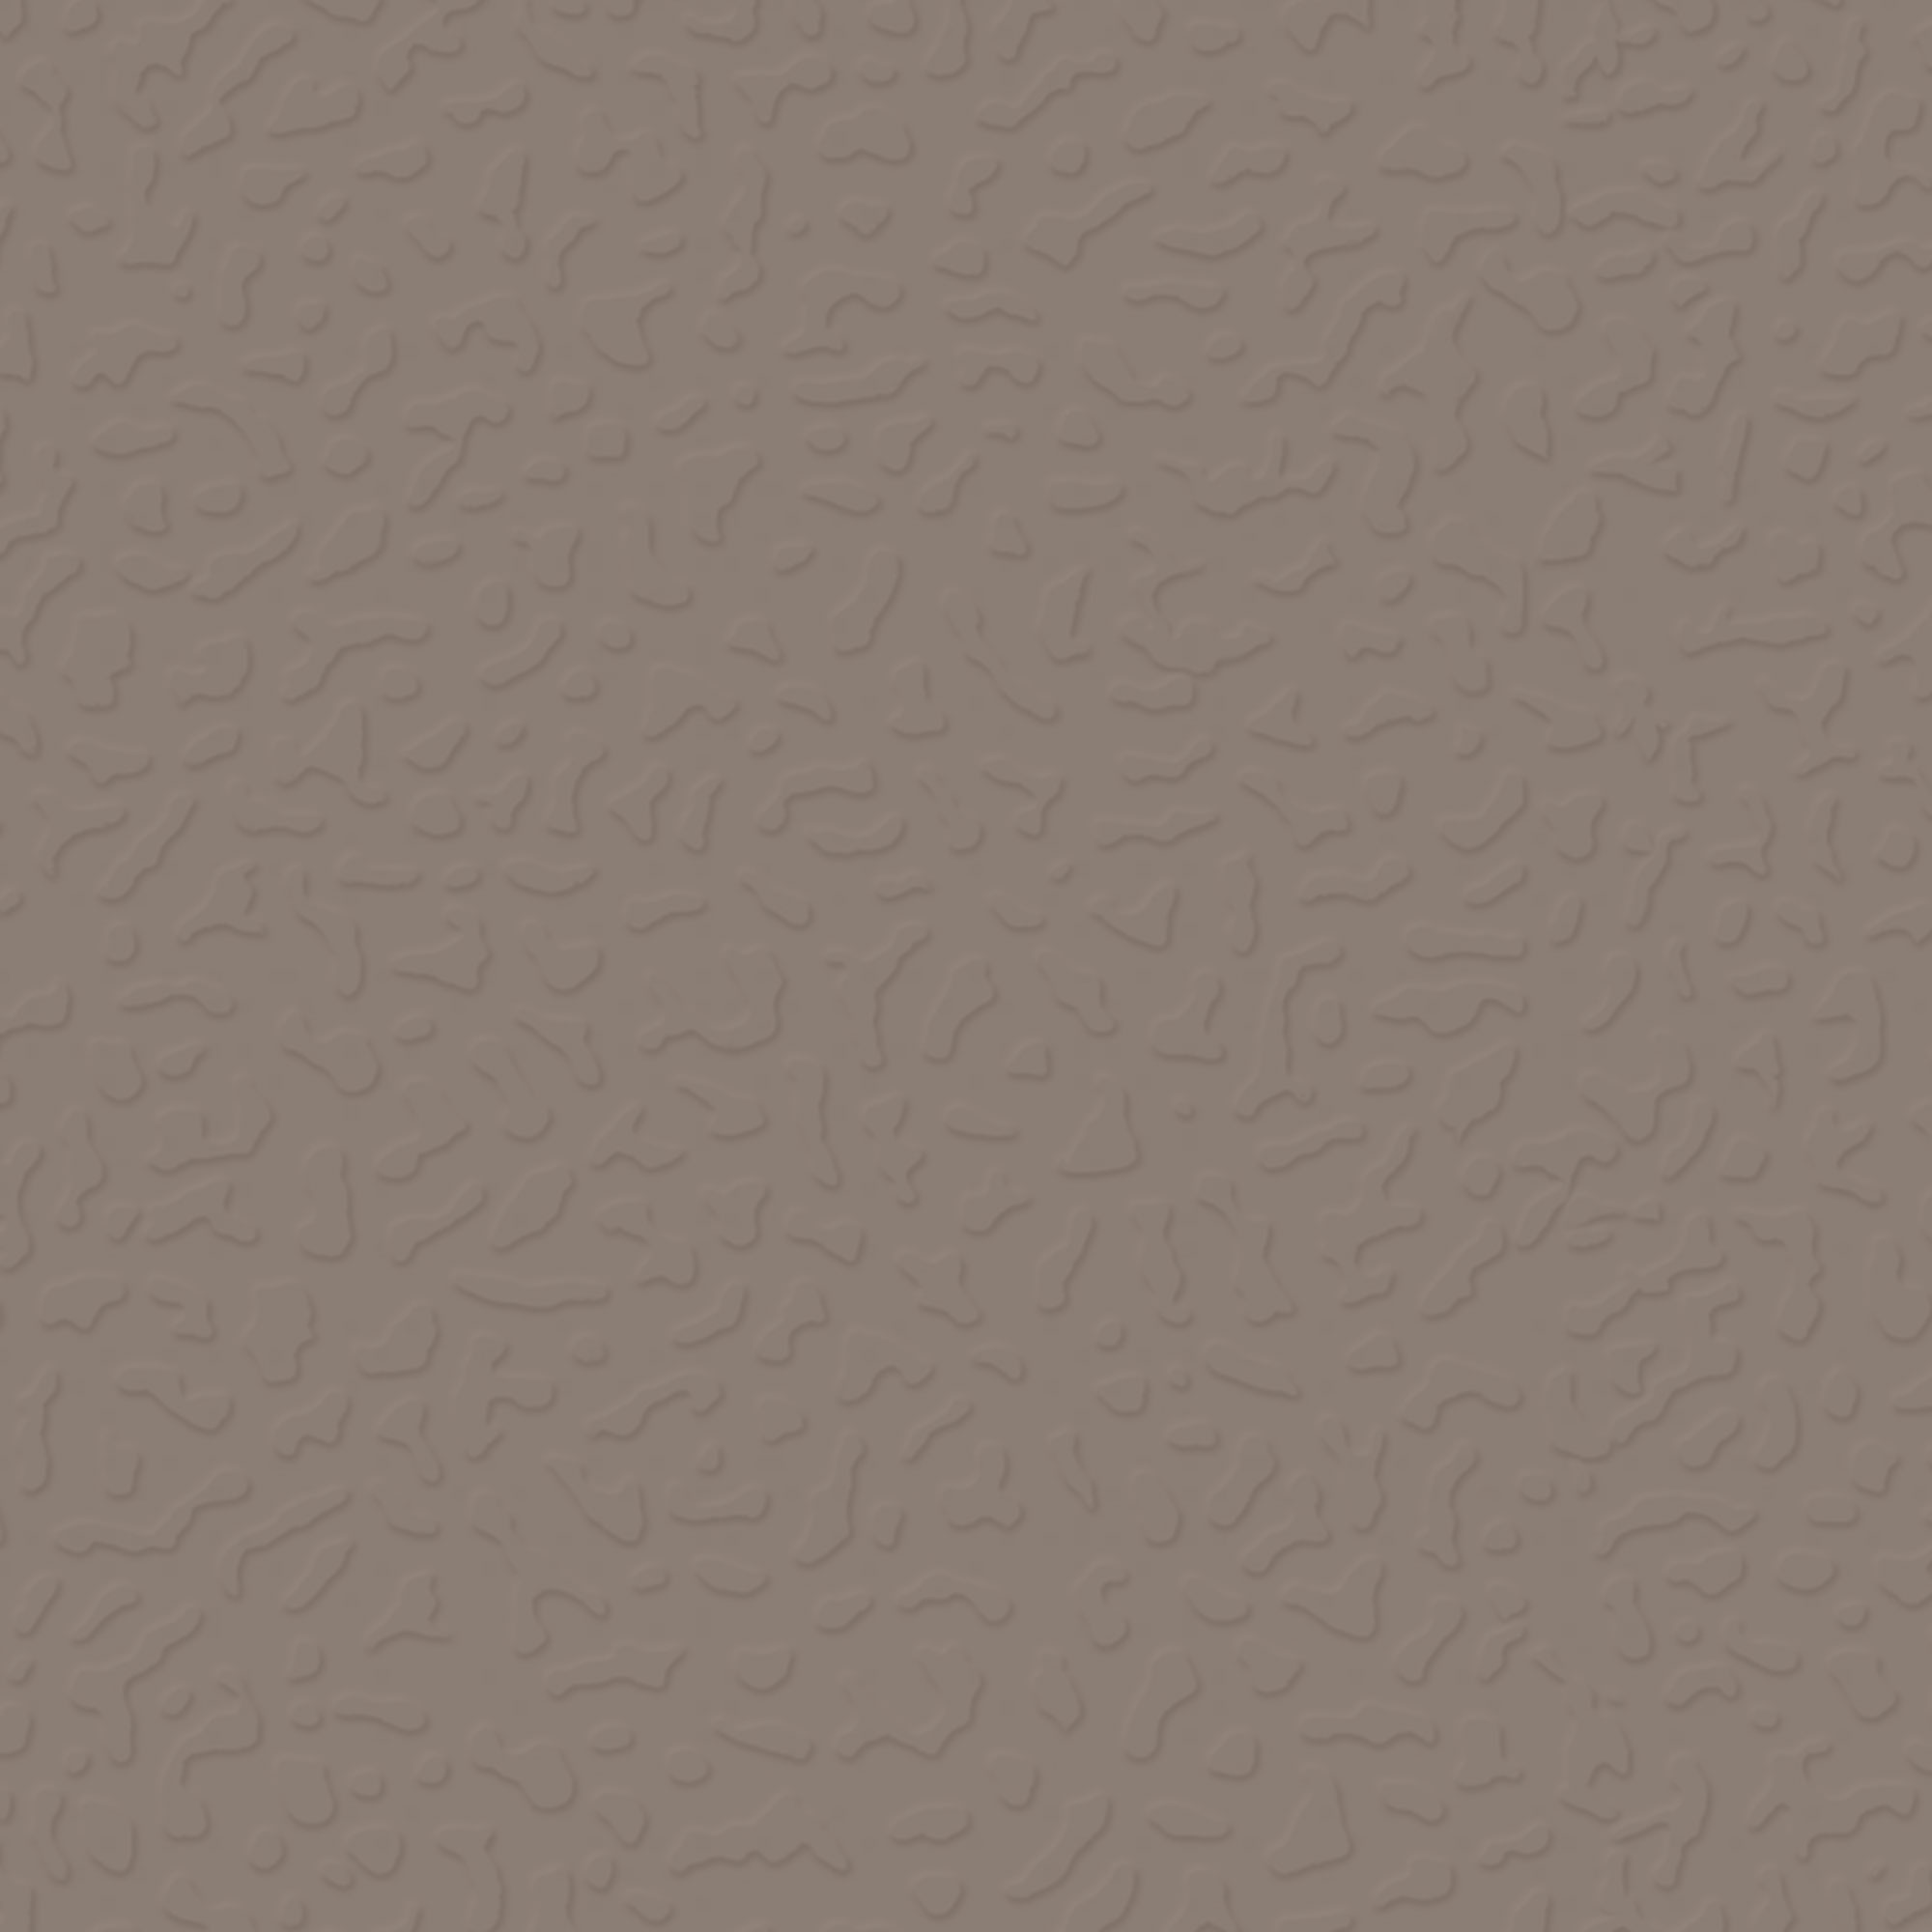 Roppe Rubber Tile 900 - Textured Design (993) Fawn LB996140